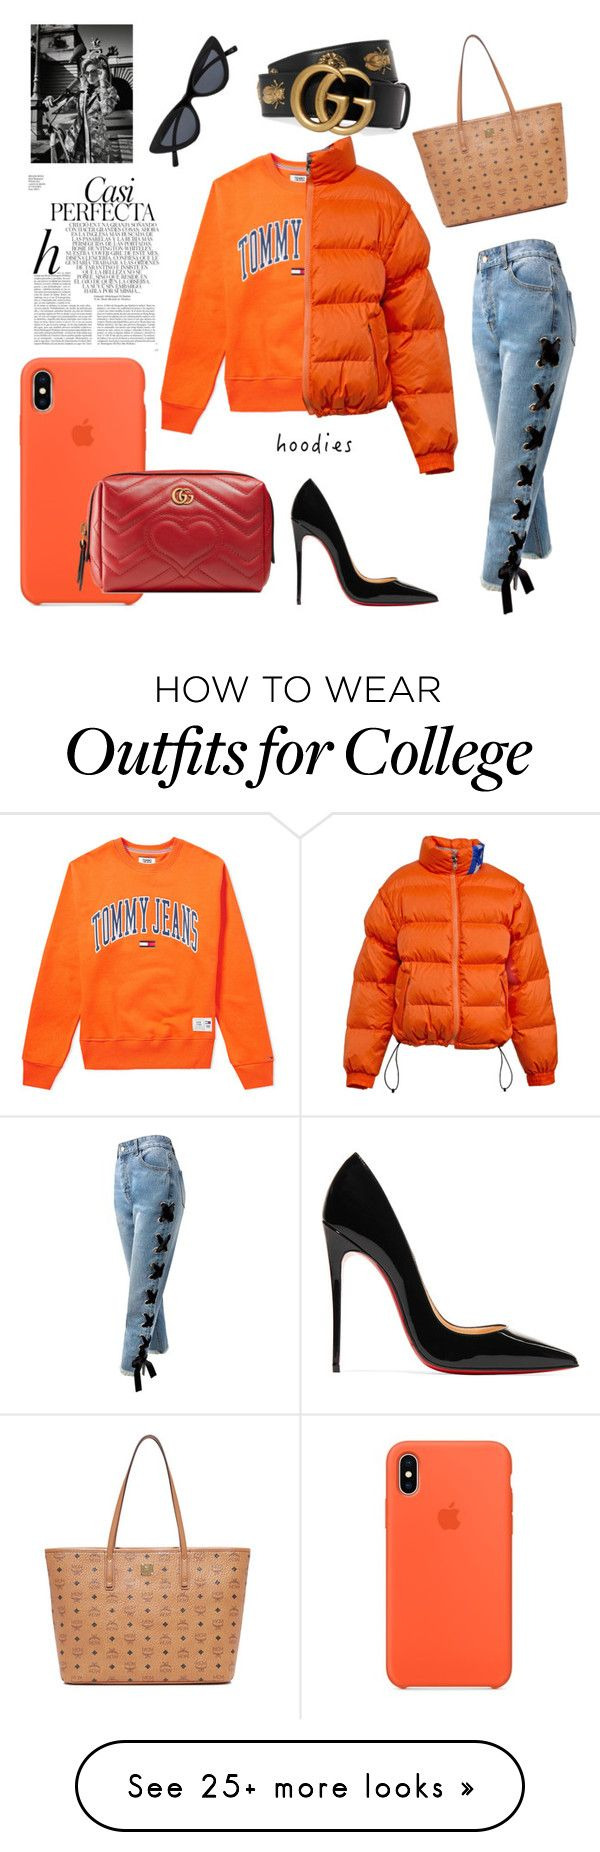 """""""Orange Hoodie Set"""" by ilvavh on Polyvore featuring Tommy Hilfiger, Sans Souci, Christian Louboutin, MCM, Gucci, Whiteley, Burton and Hoodies"""